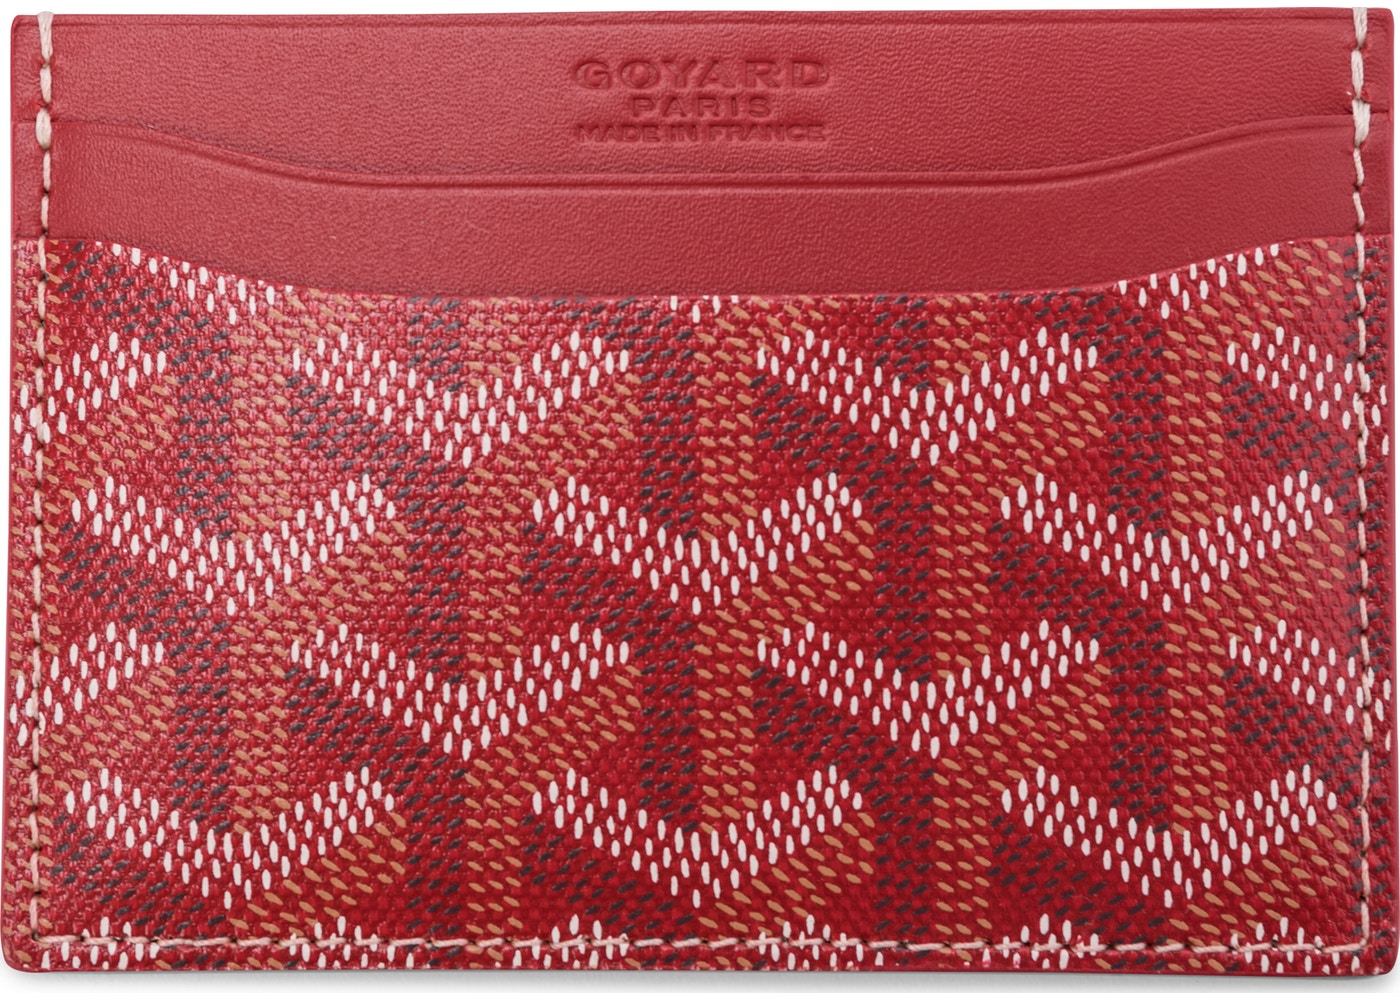 ca307c891e52 Goyard Saint Sulpice Card Holder Monogram Chevron Multicolor Red. Monogram  Chevron Multicolor Red